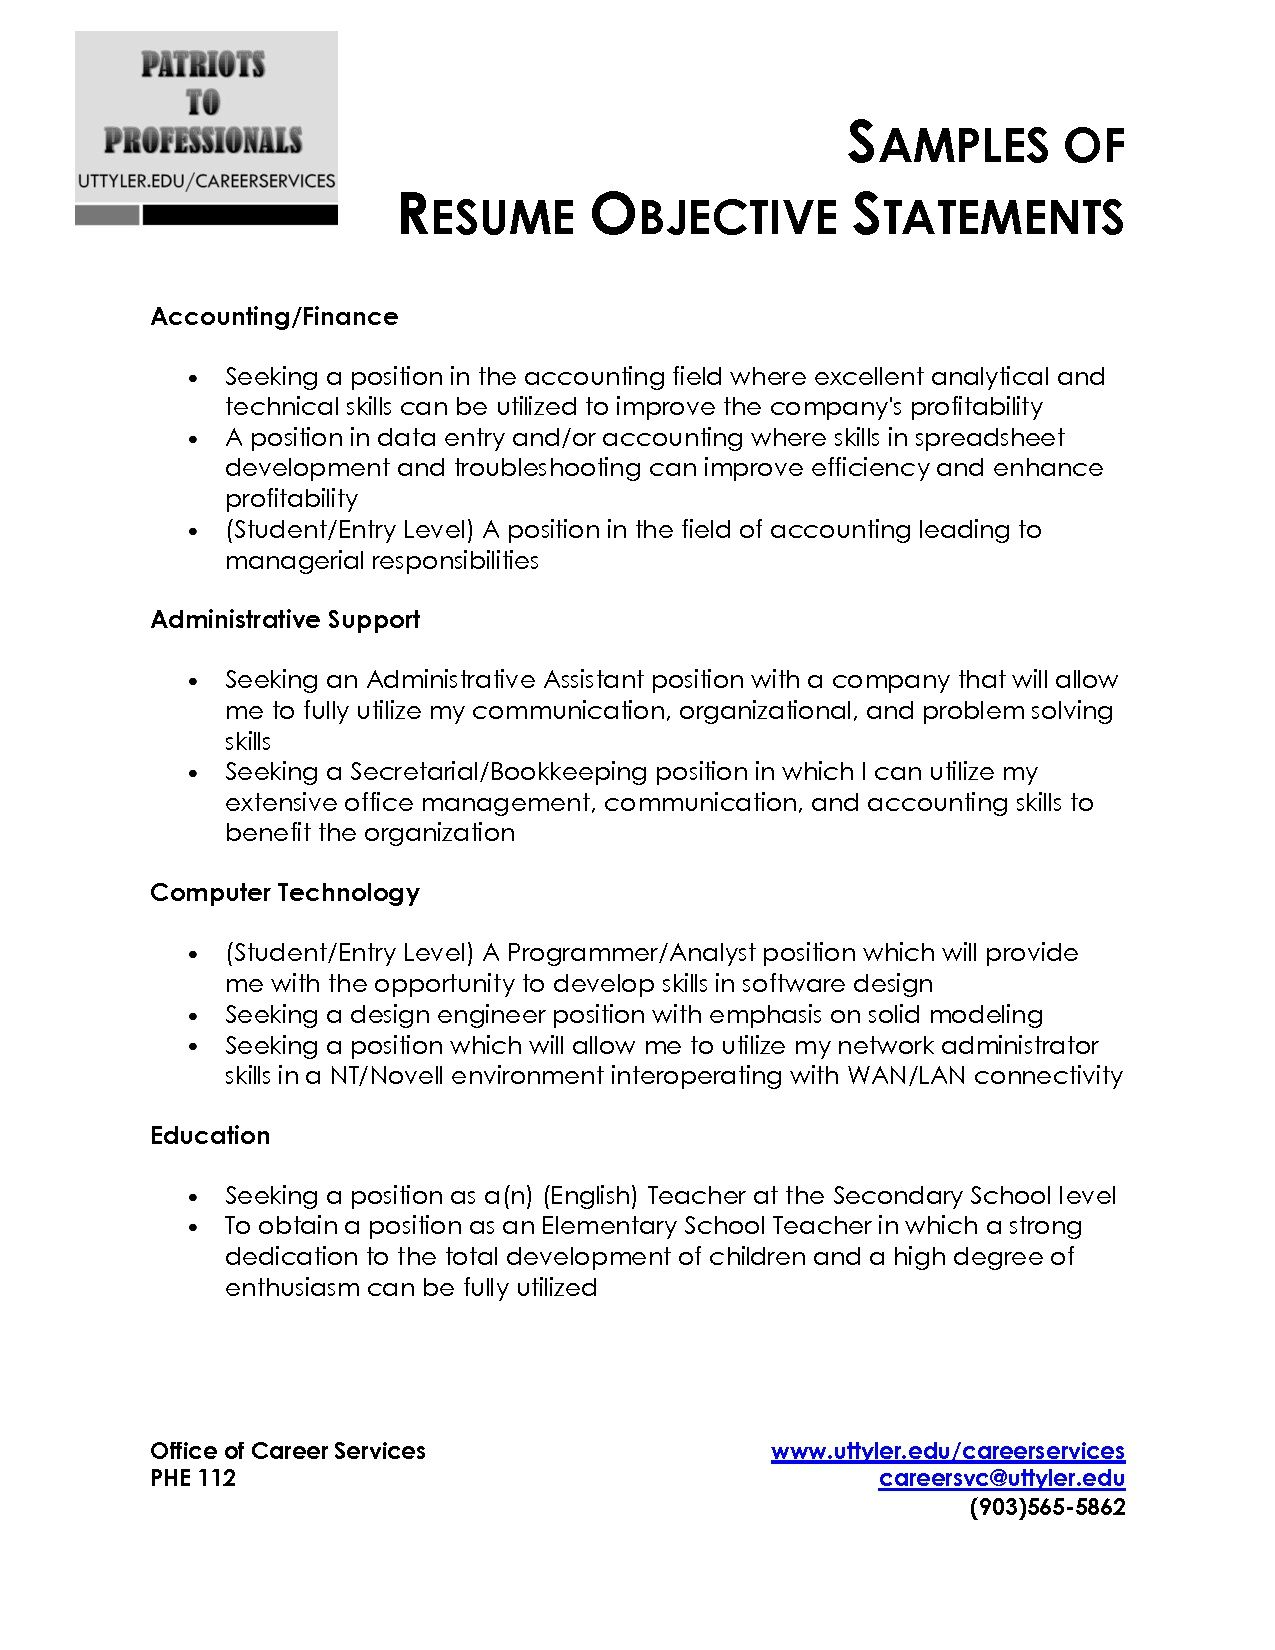 sample resume objective statement free templates examples strong statements clerical Resume Strong Resume Objective Statements